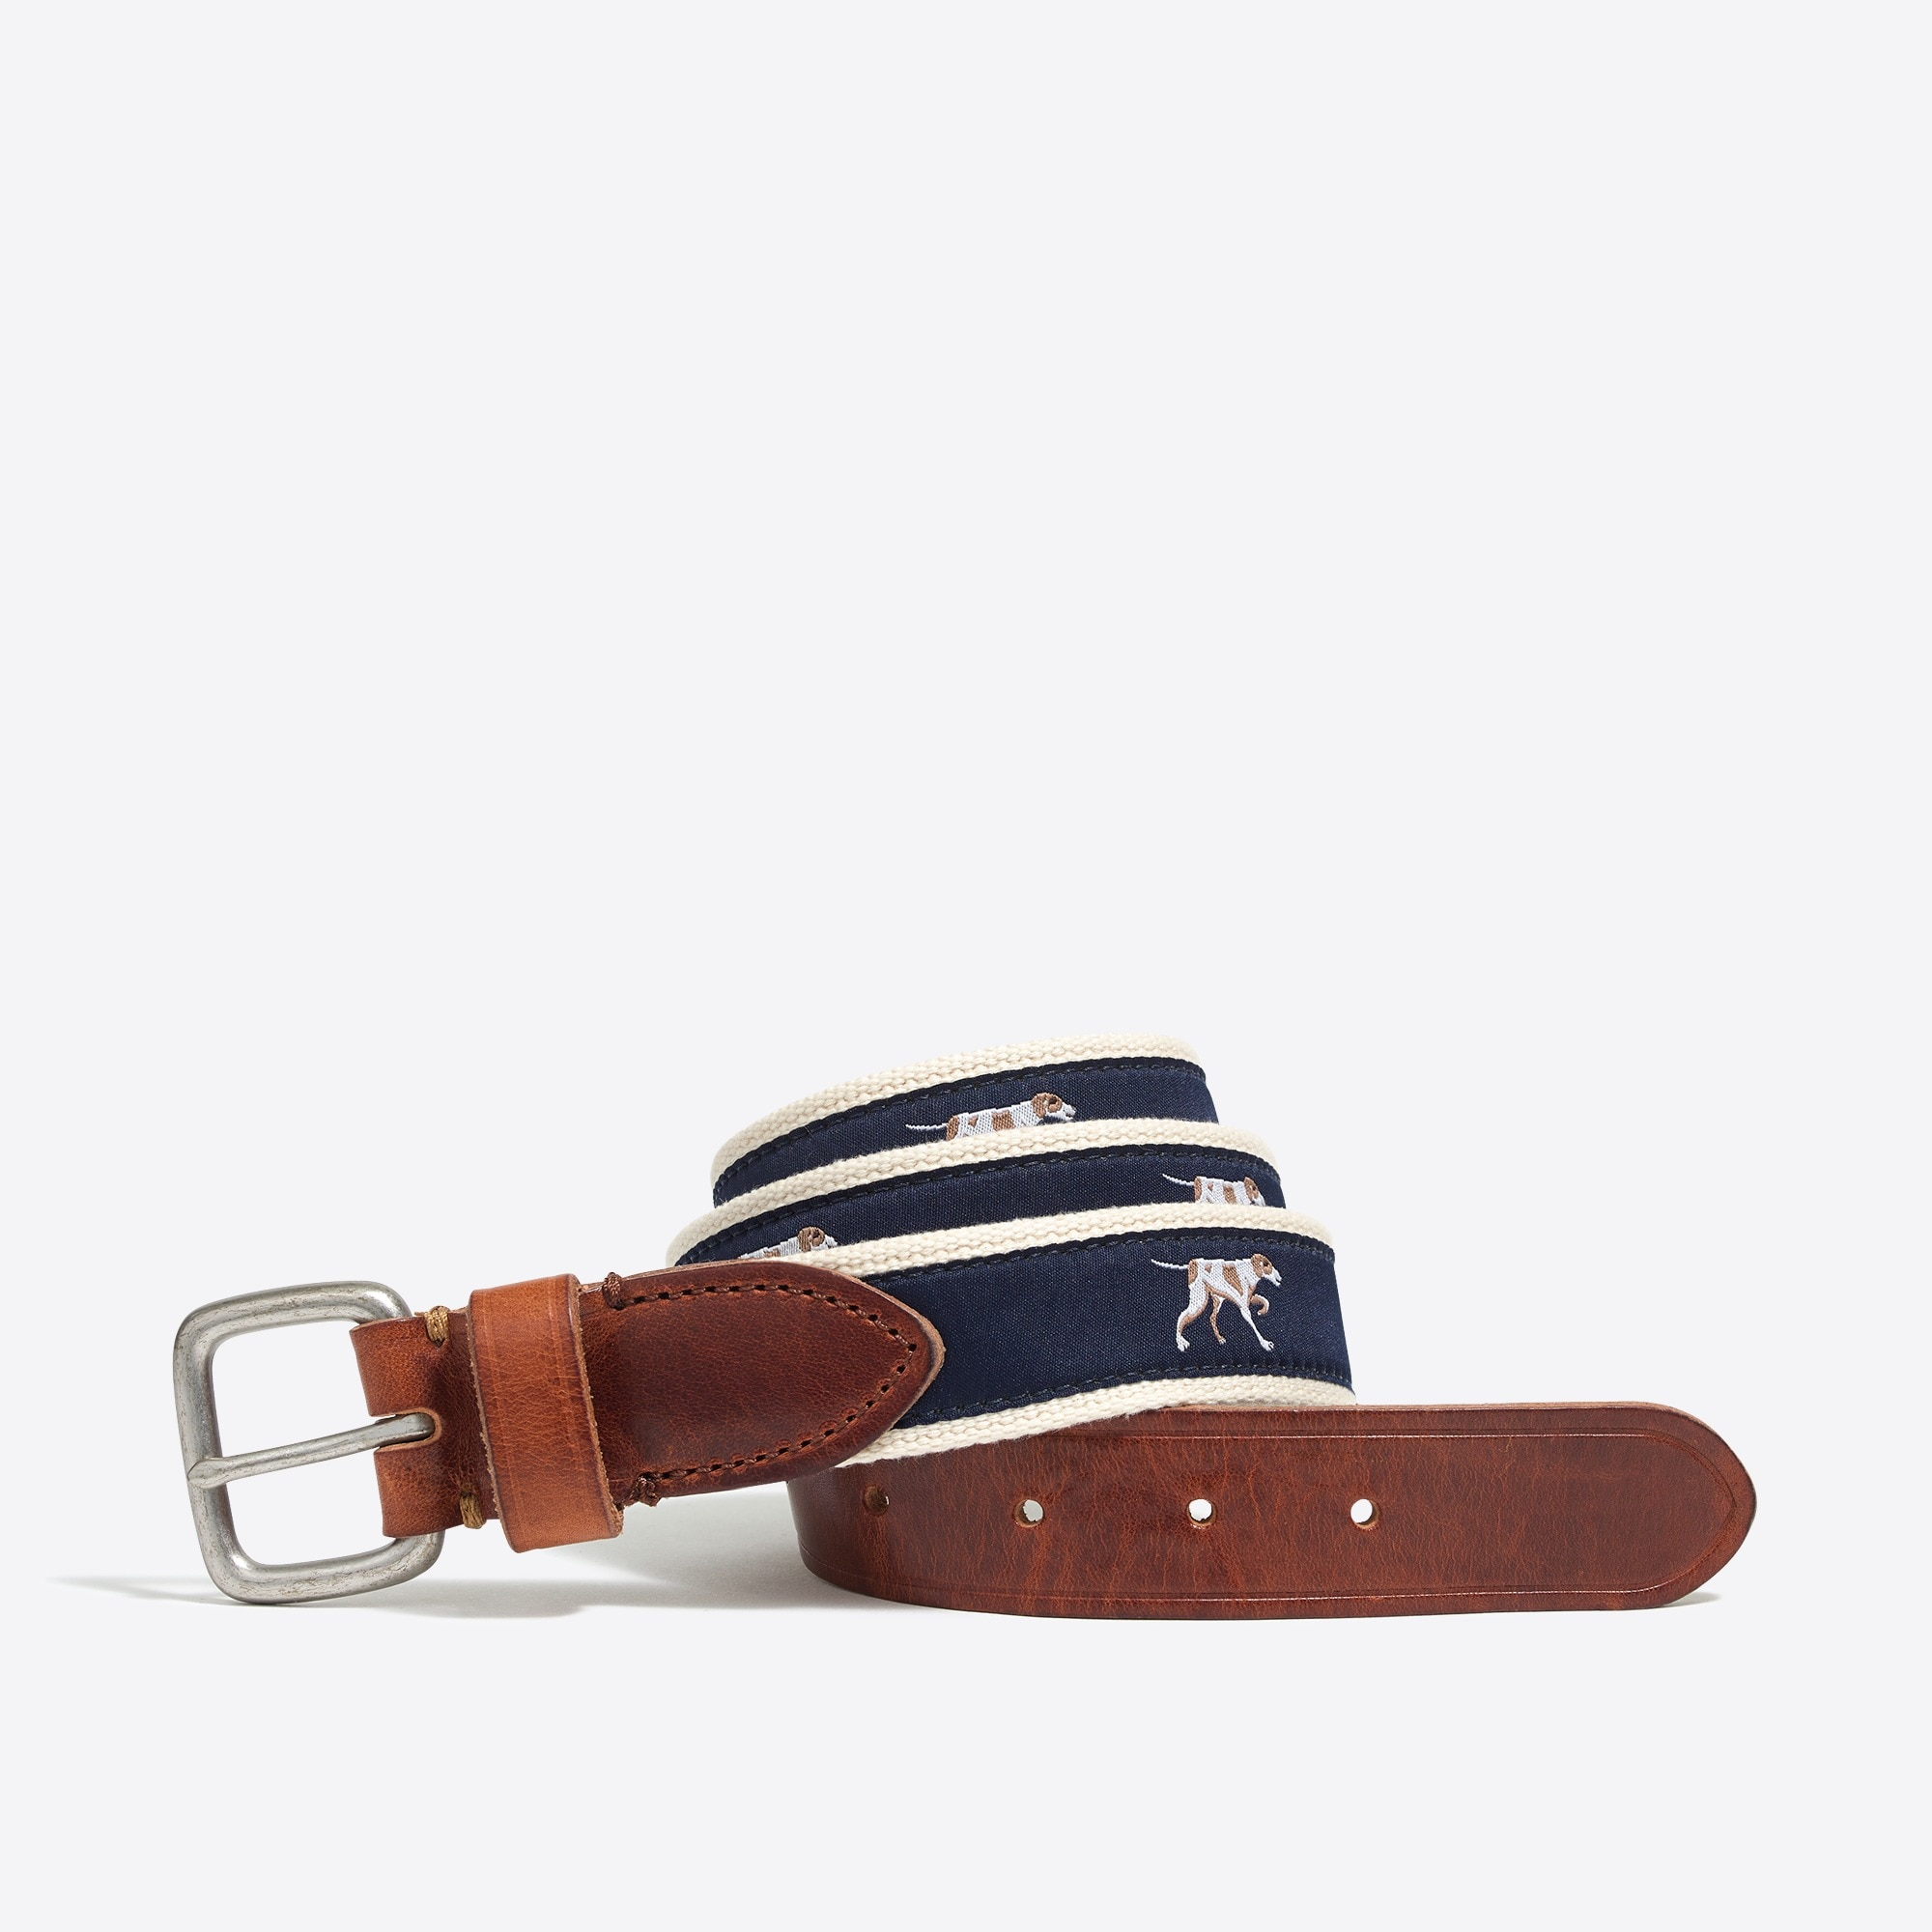 j.crew factory: embroidered patterned belt